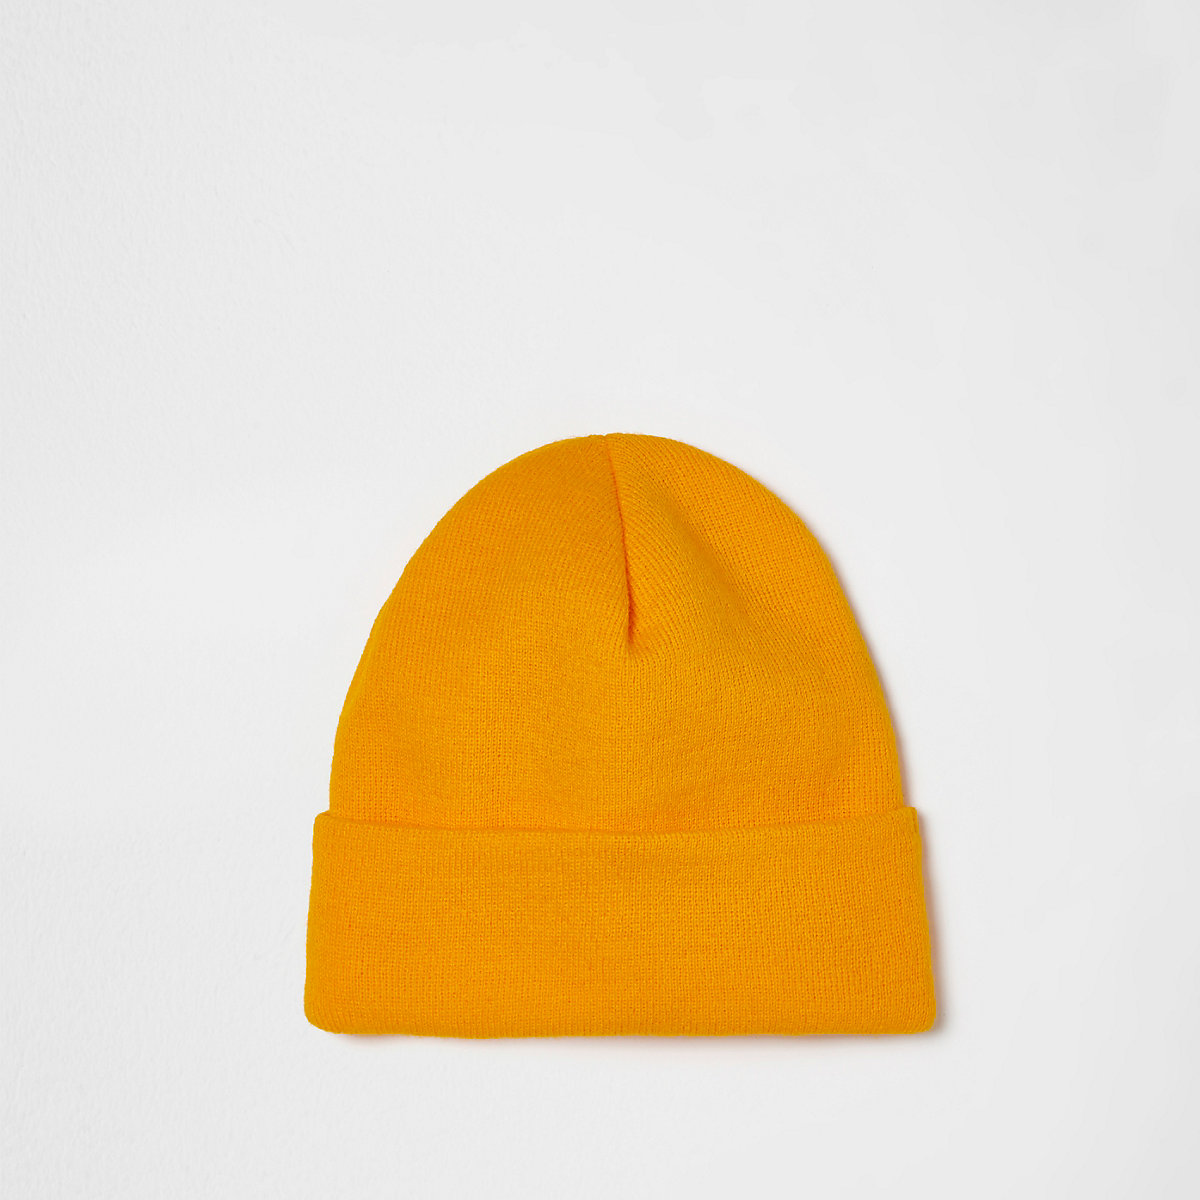 Yellow knitted beanie hat